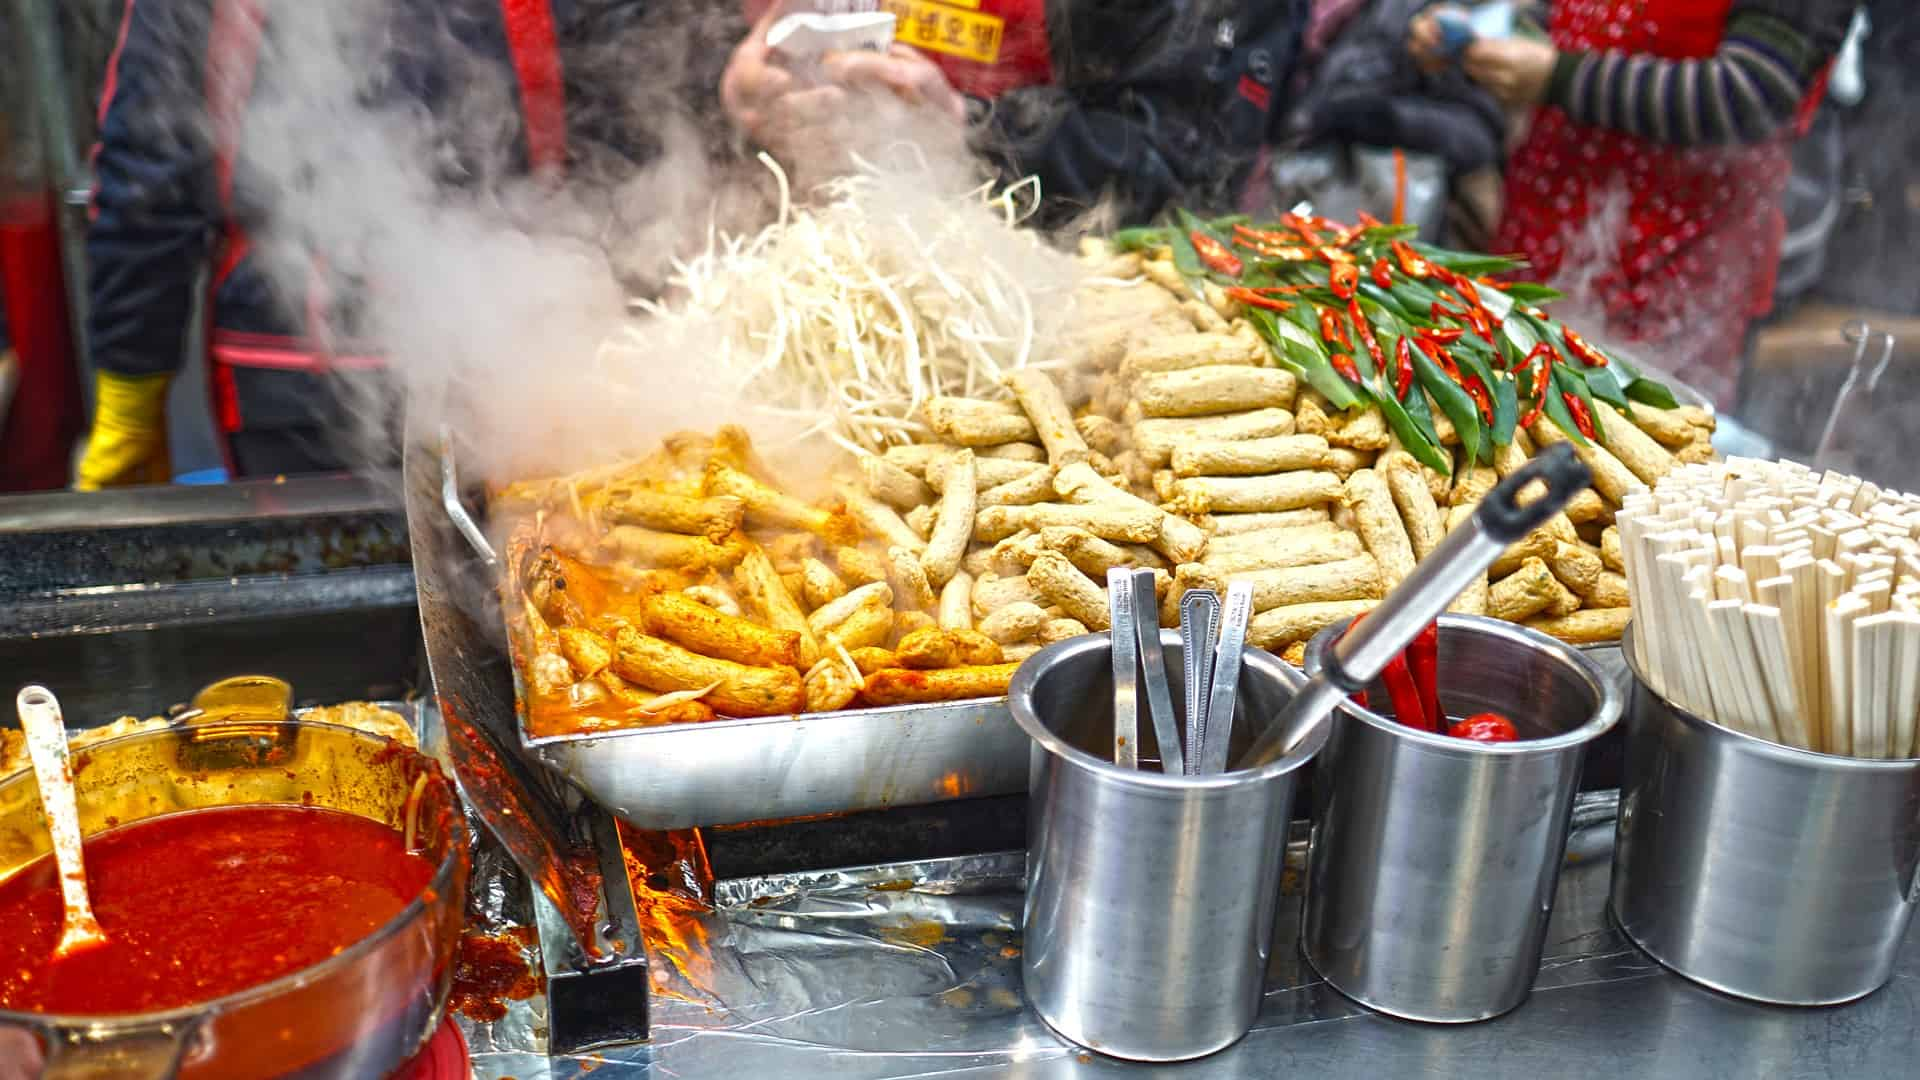 Street Food - An Attraction Since The Early Times